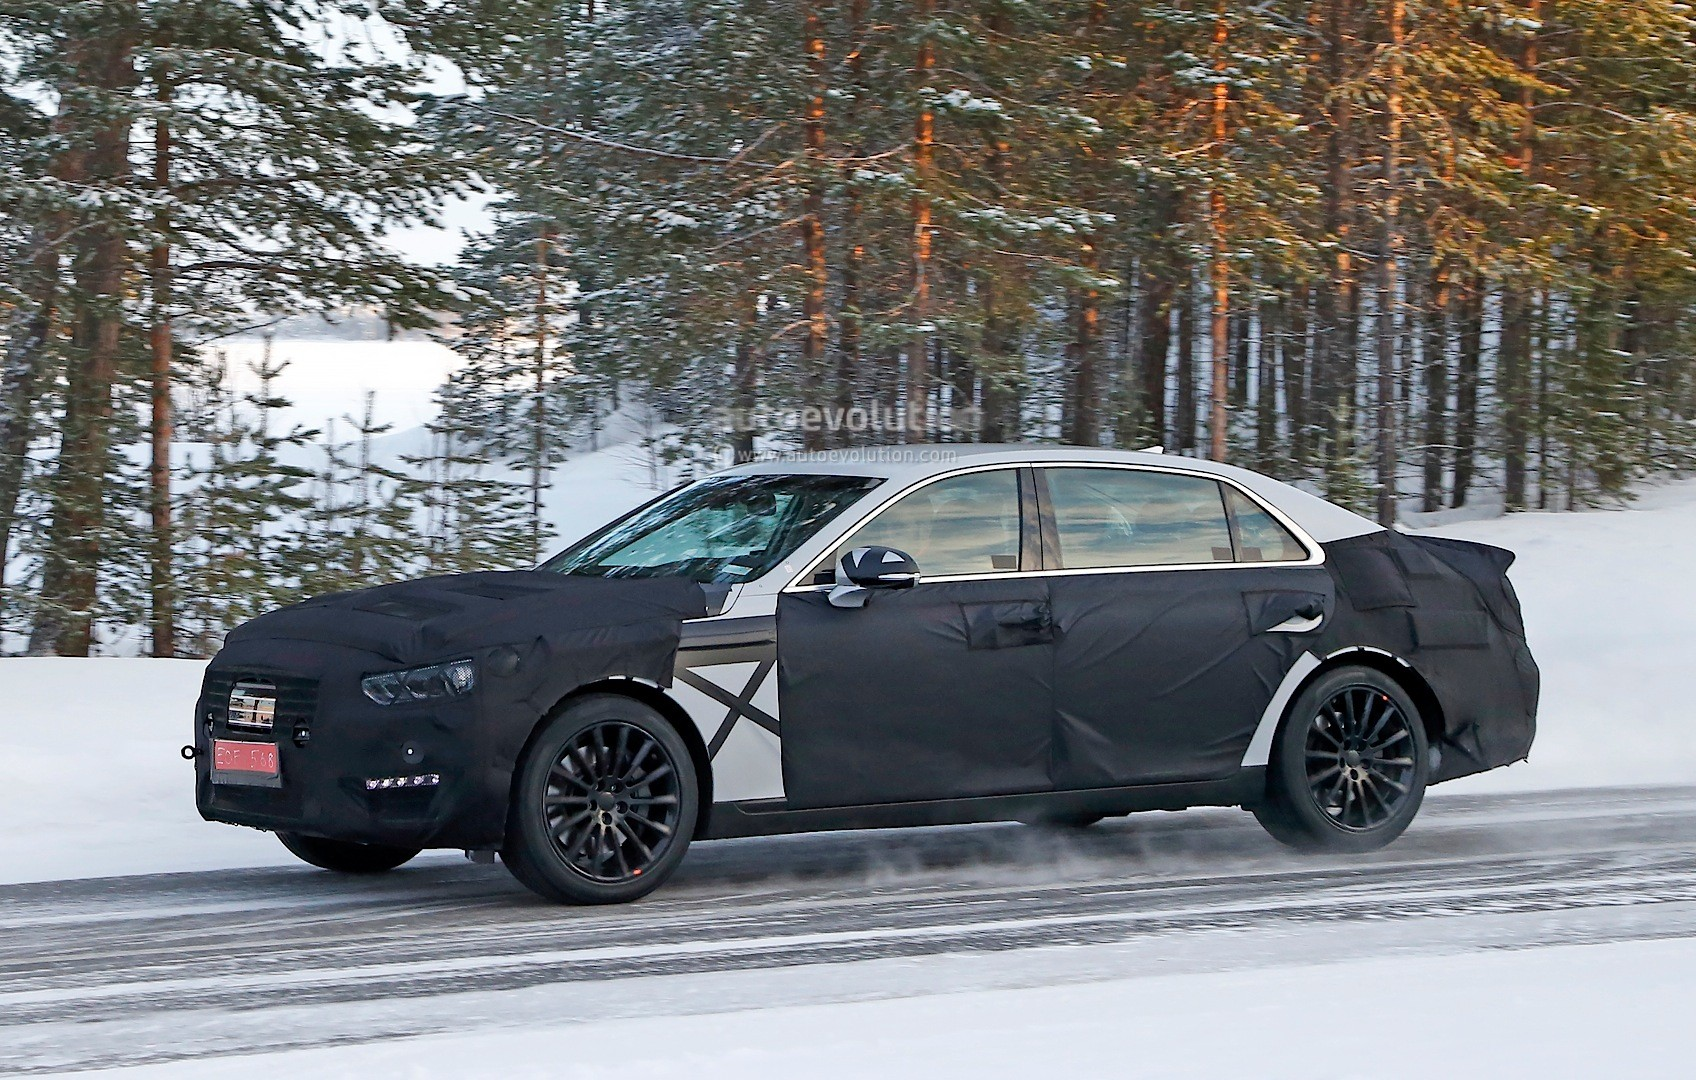 spyshots 2016 hyundai equus spied with s class inspired taillights autoevolution. Black Bedroom Furniture Sets. Home Design Ideas